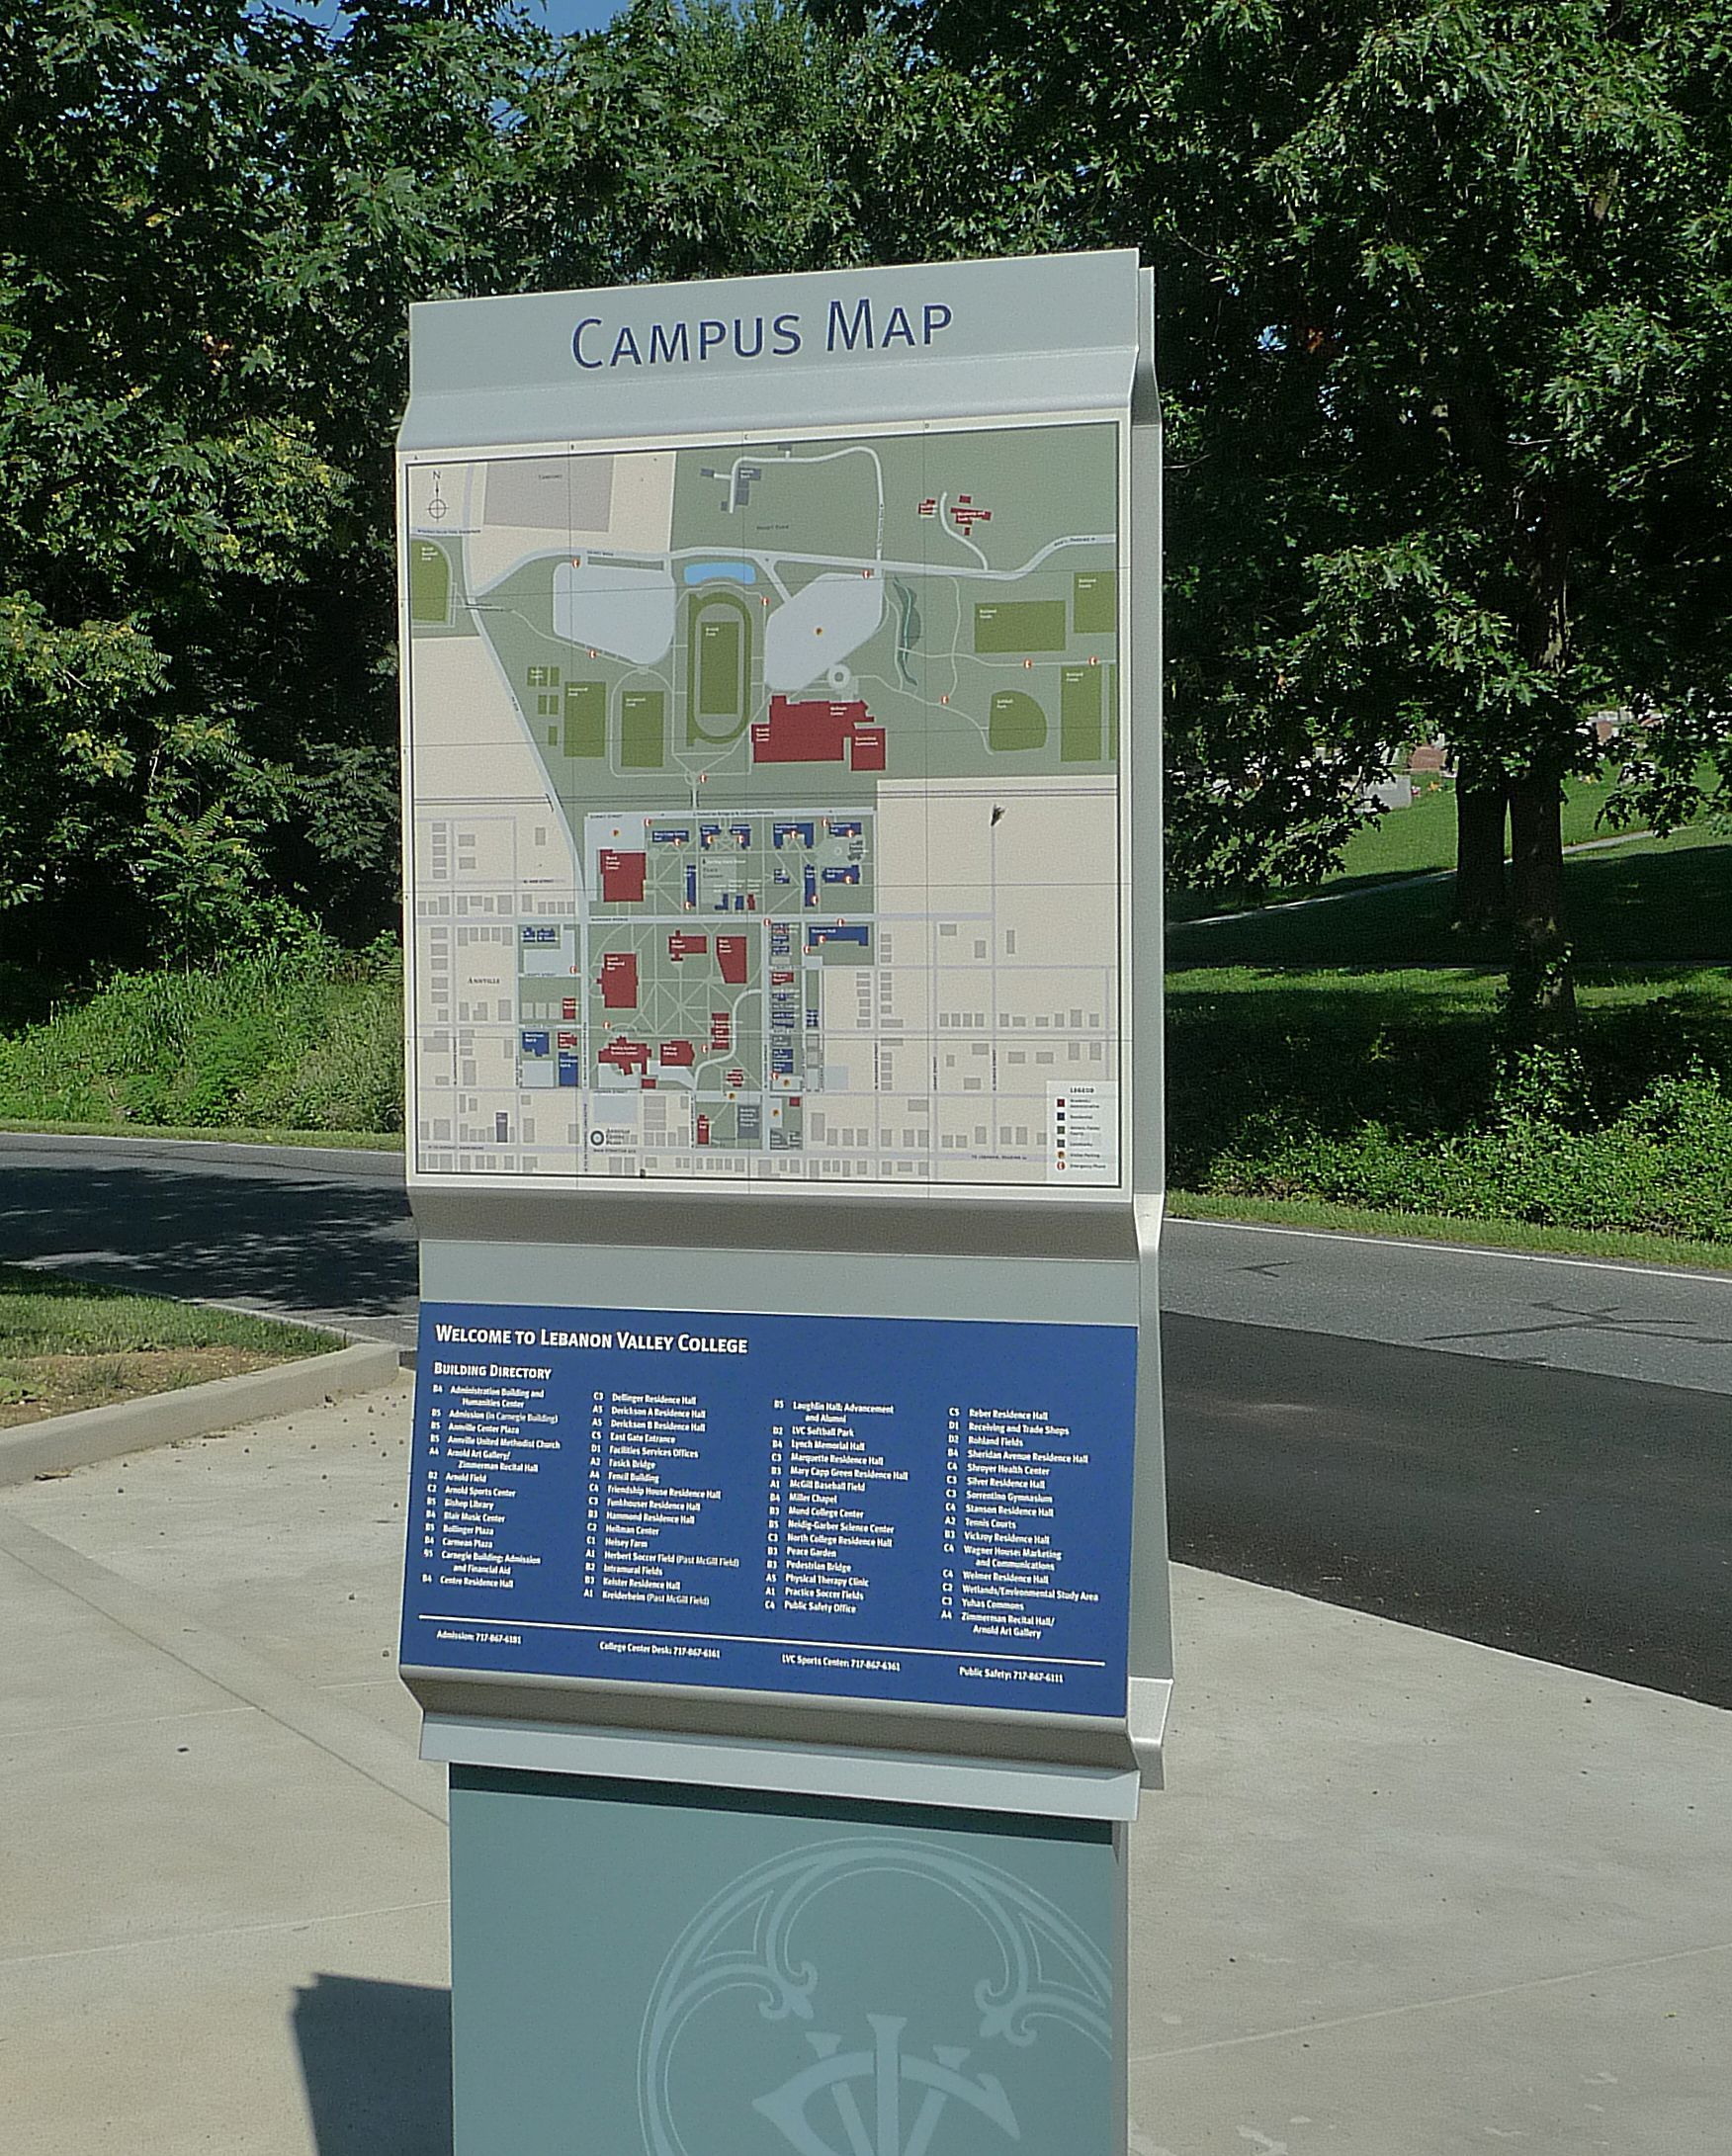 Lebanon Valley College Campus Map.Lebanon Valley College Wayfinding Campus Map Graphics